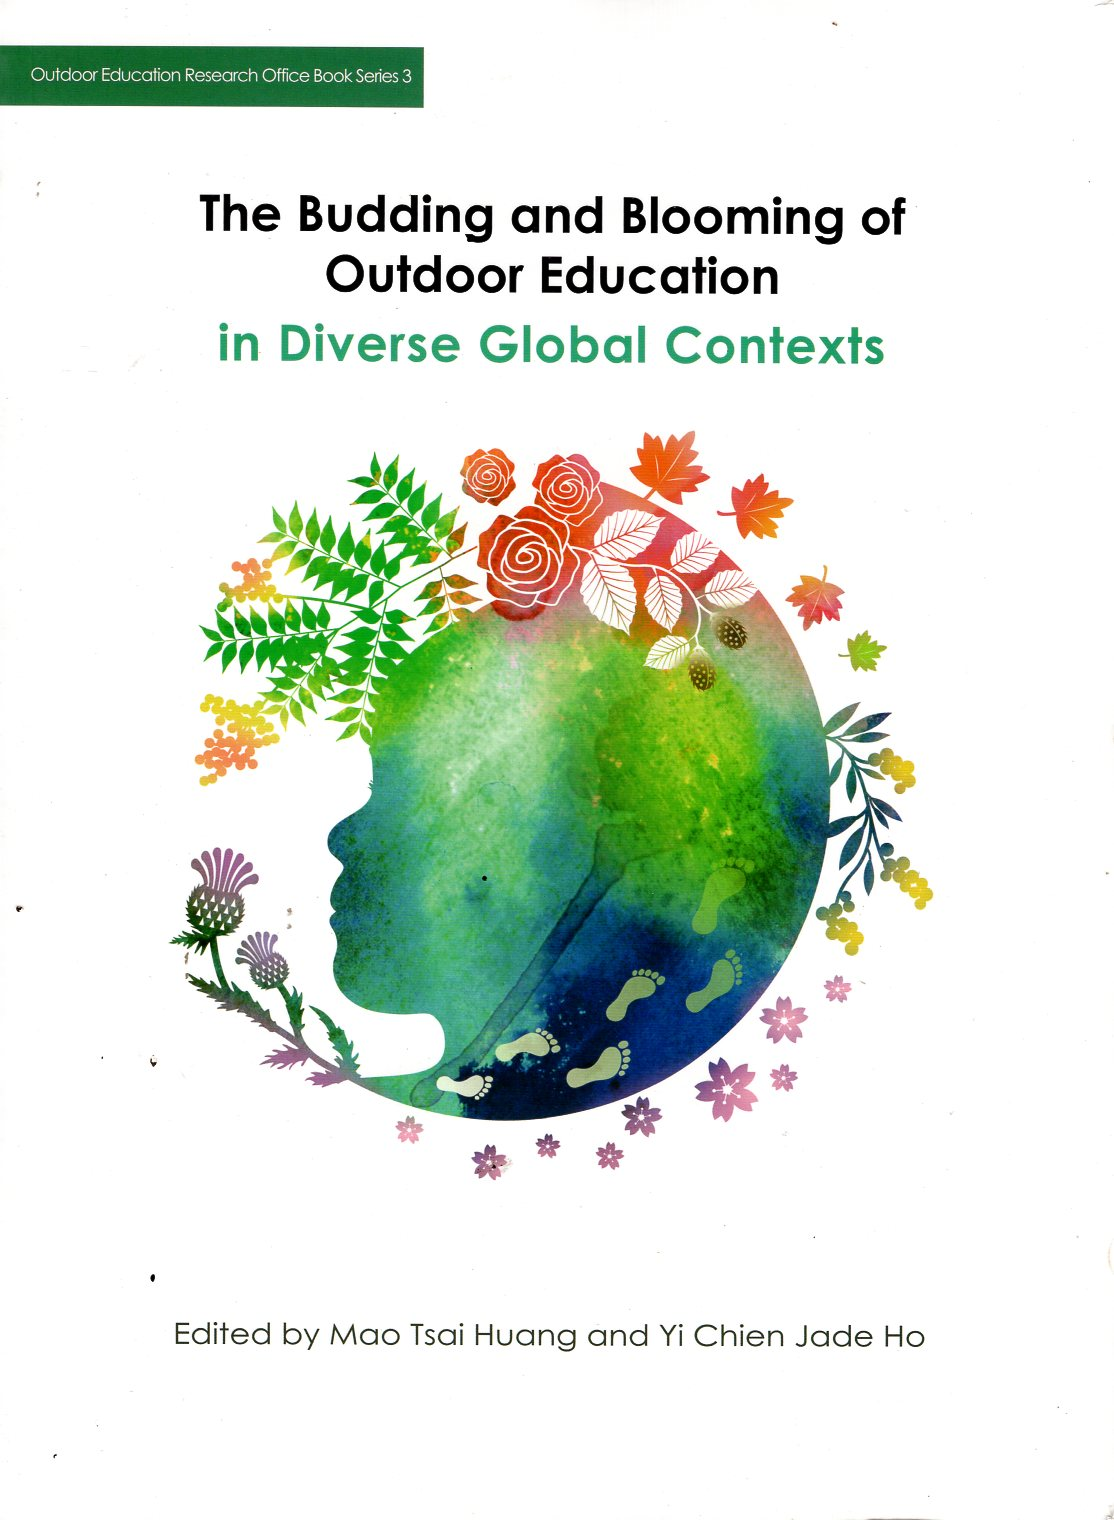 The Budding and Blooming of Outdoor Education in Diverse Global Contexts  放眼國際–戶外教育的多元演替與發展趨勢(英文版)